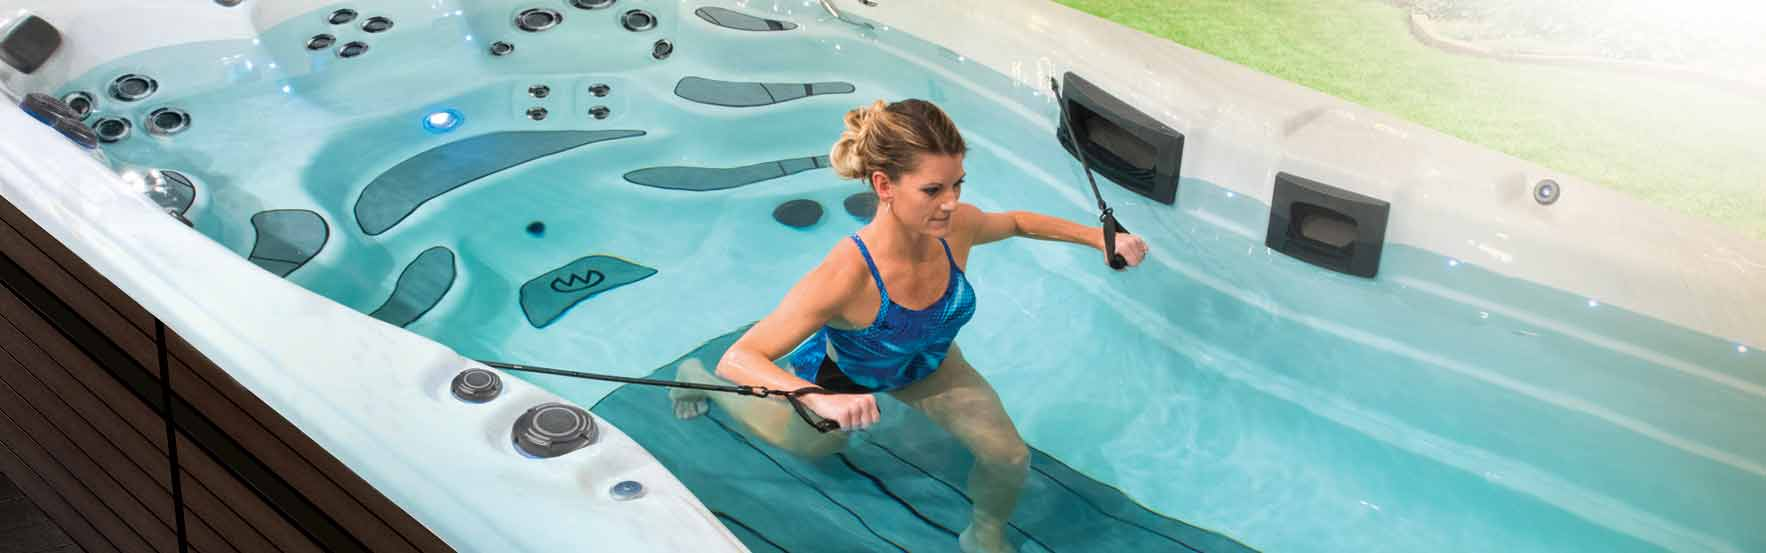 Trainer Series swim spas by Master Spas